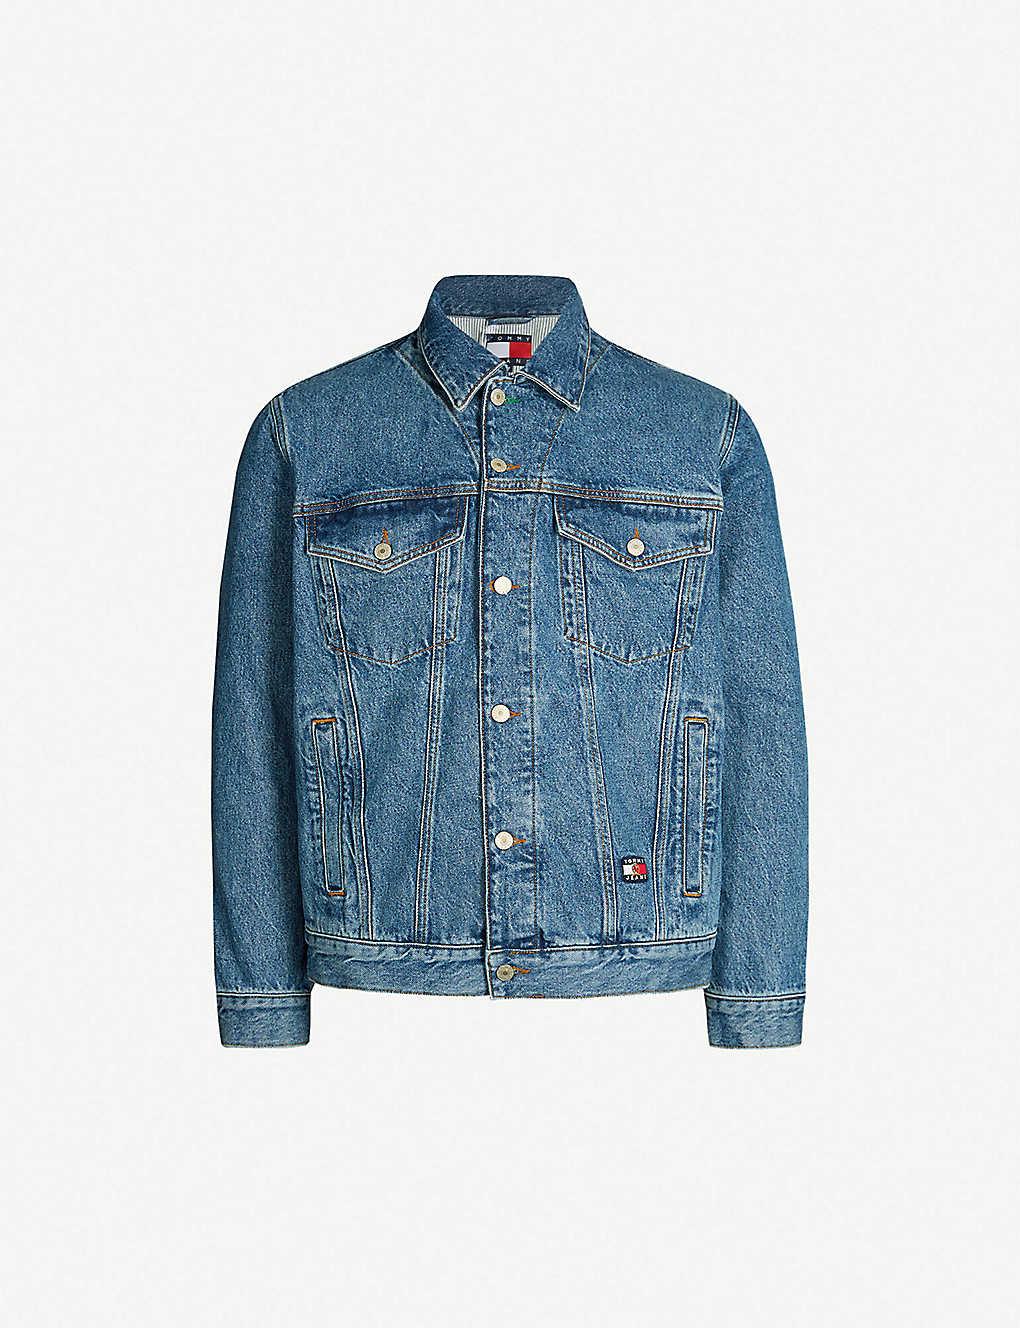 e2575a3c TOMMY JEANS - 6.0 Crest denim trucker jacket | Selfridges.comm